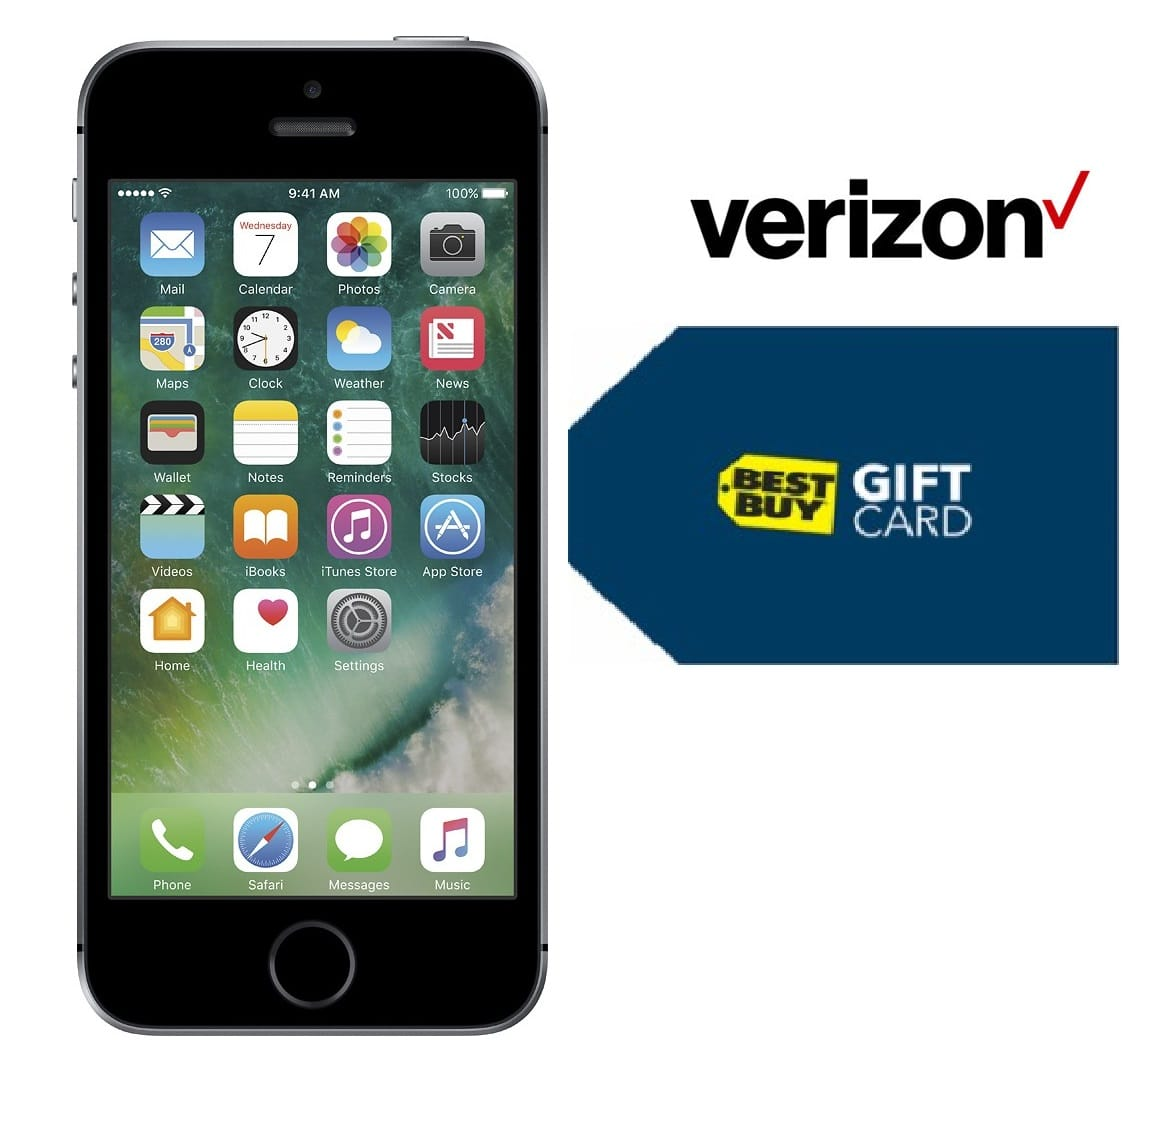 Best Buy  Gift Card Iphone